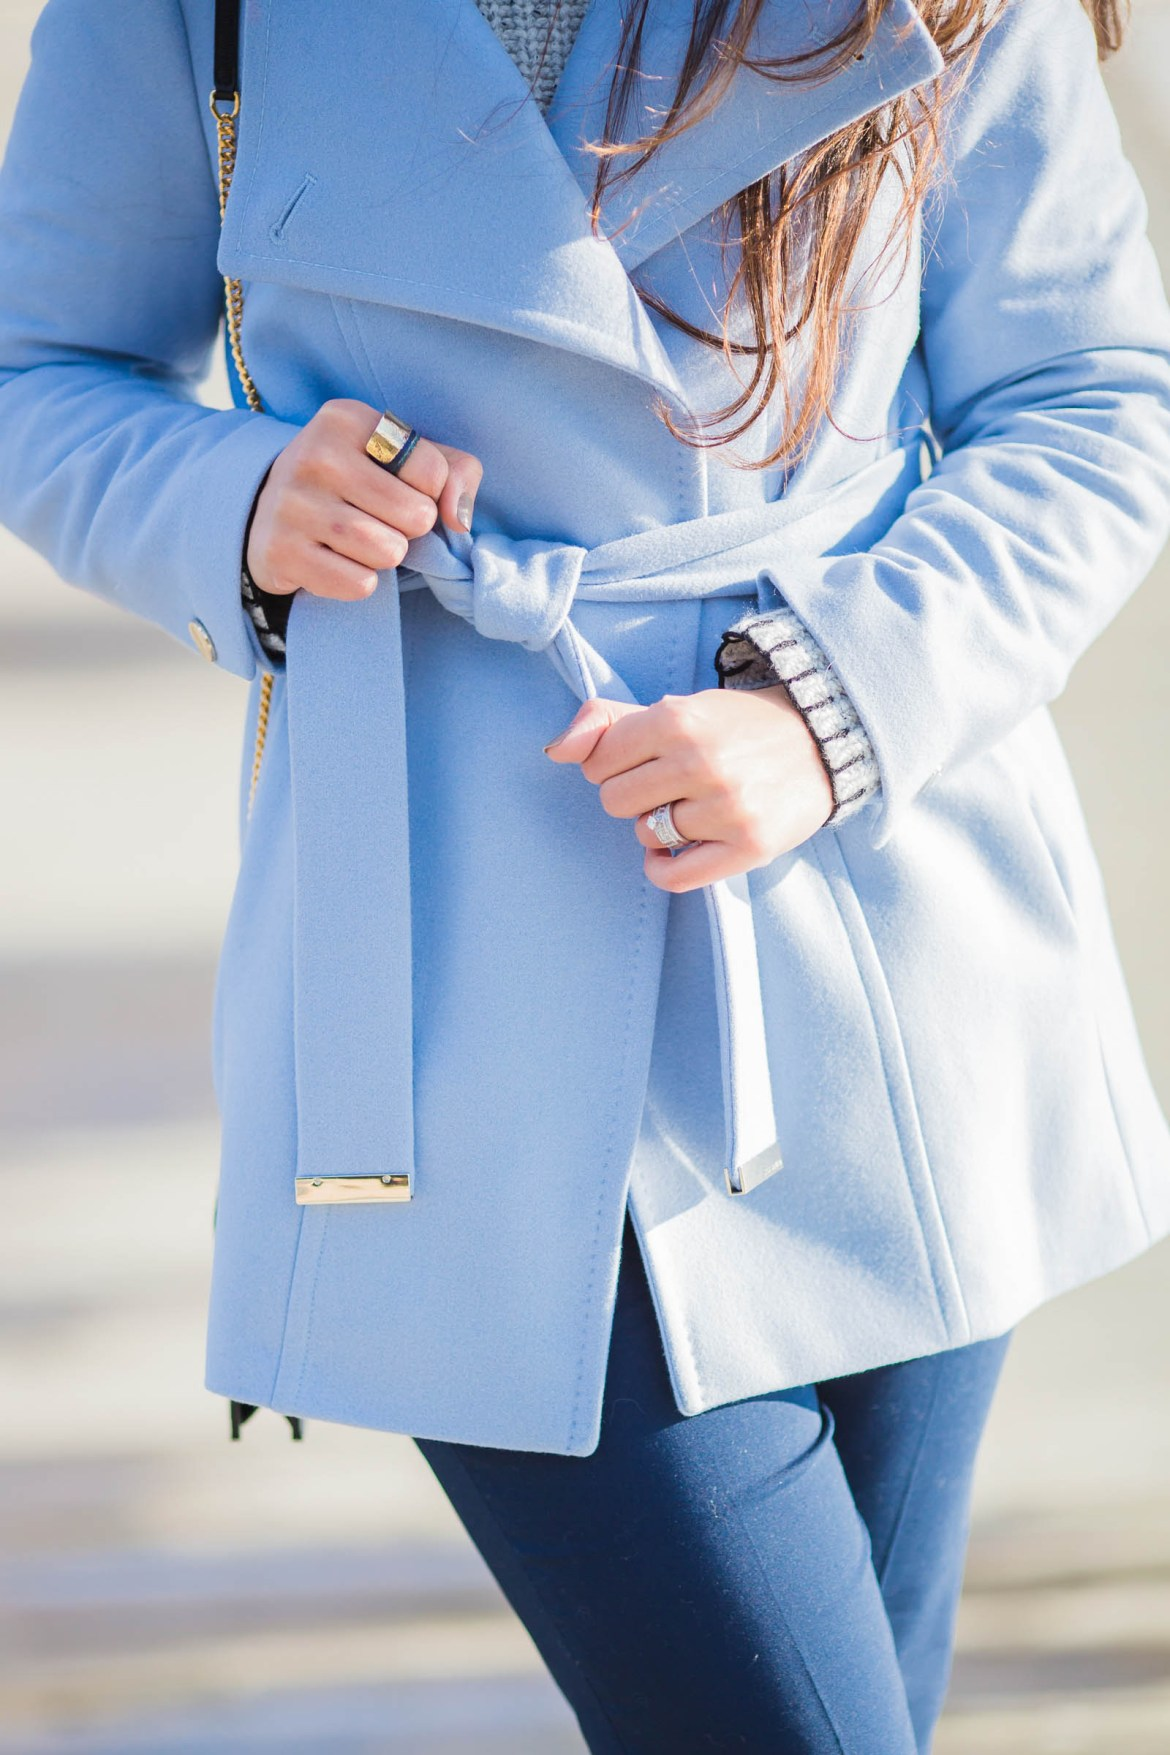 sky-blue-pea-coat-ted-baker-ysl-zara-wide-leg-pants-ray-ben-cold-spring-fashion-blogger-stylist-9